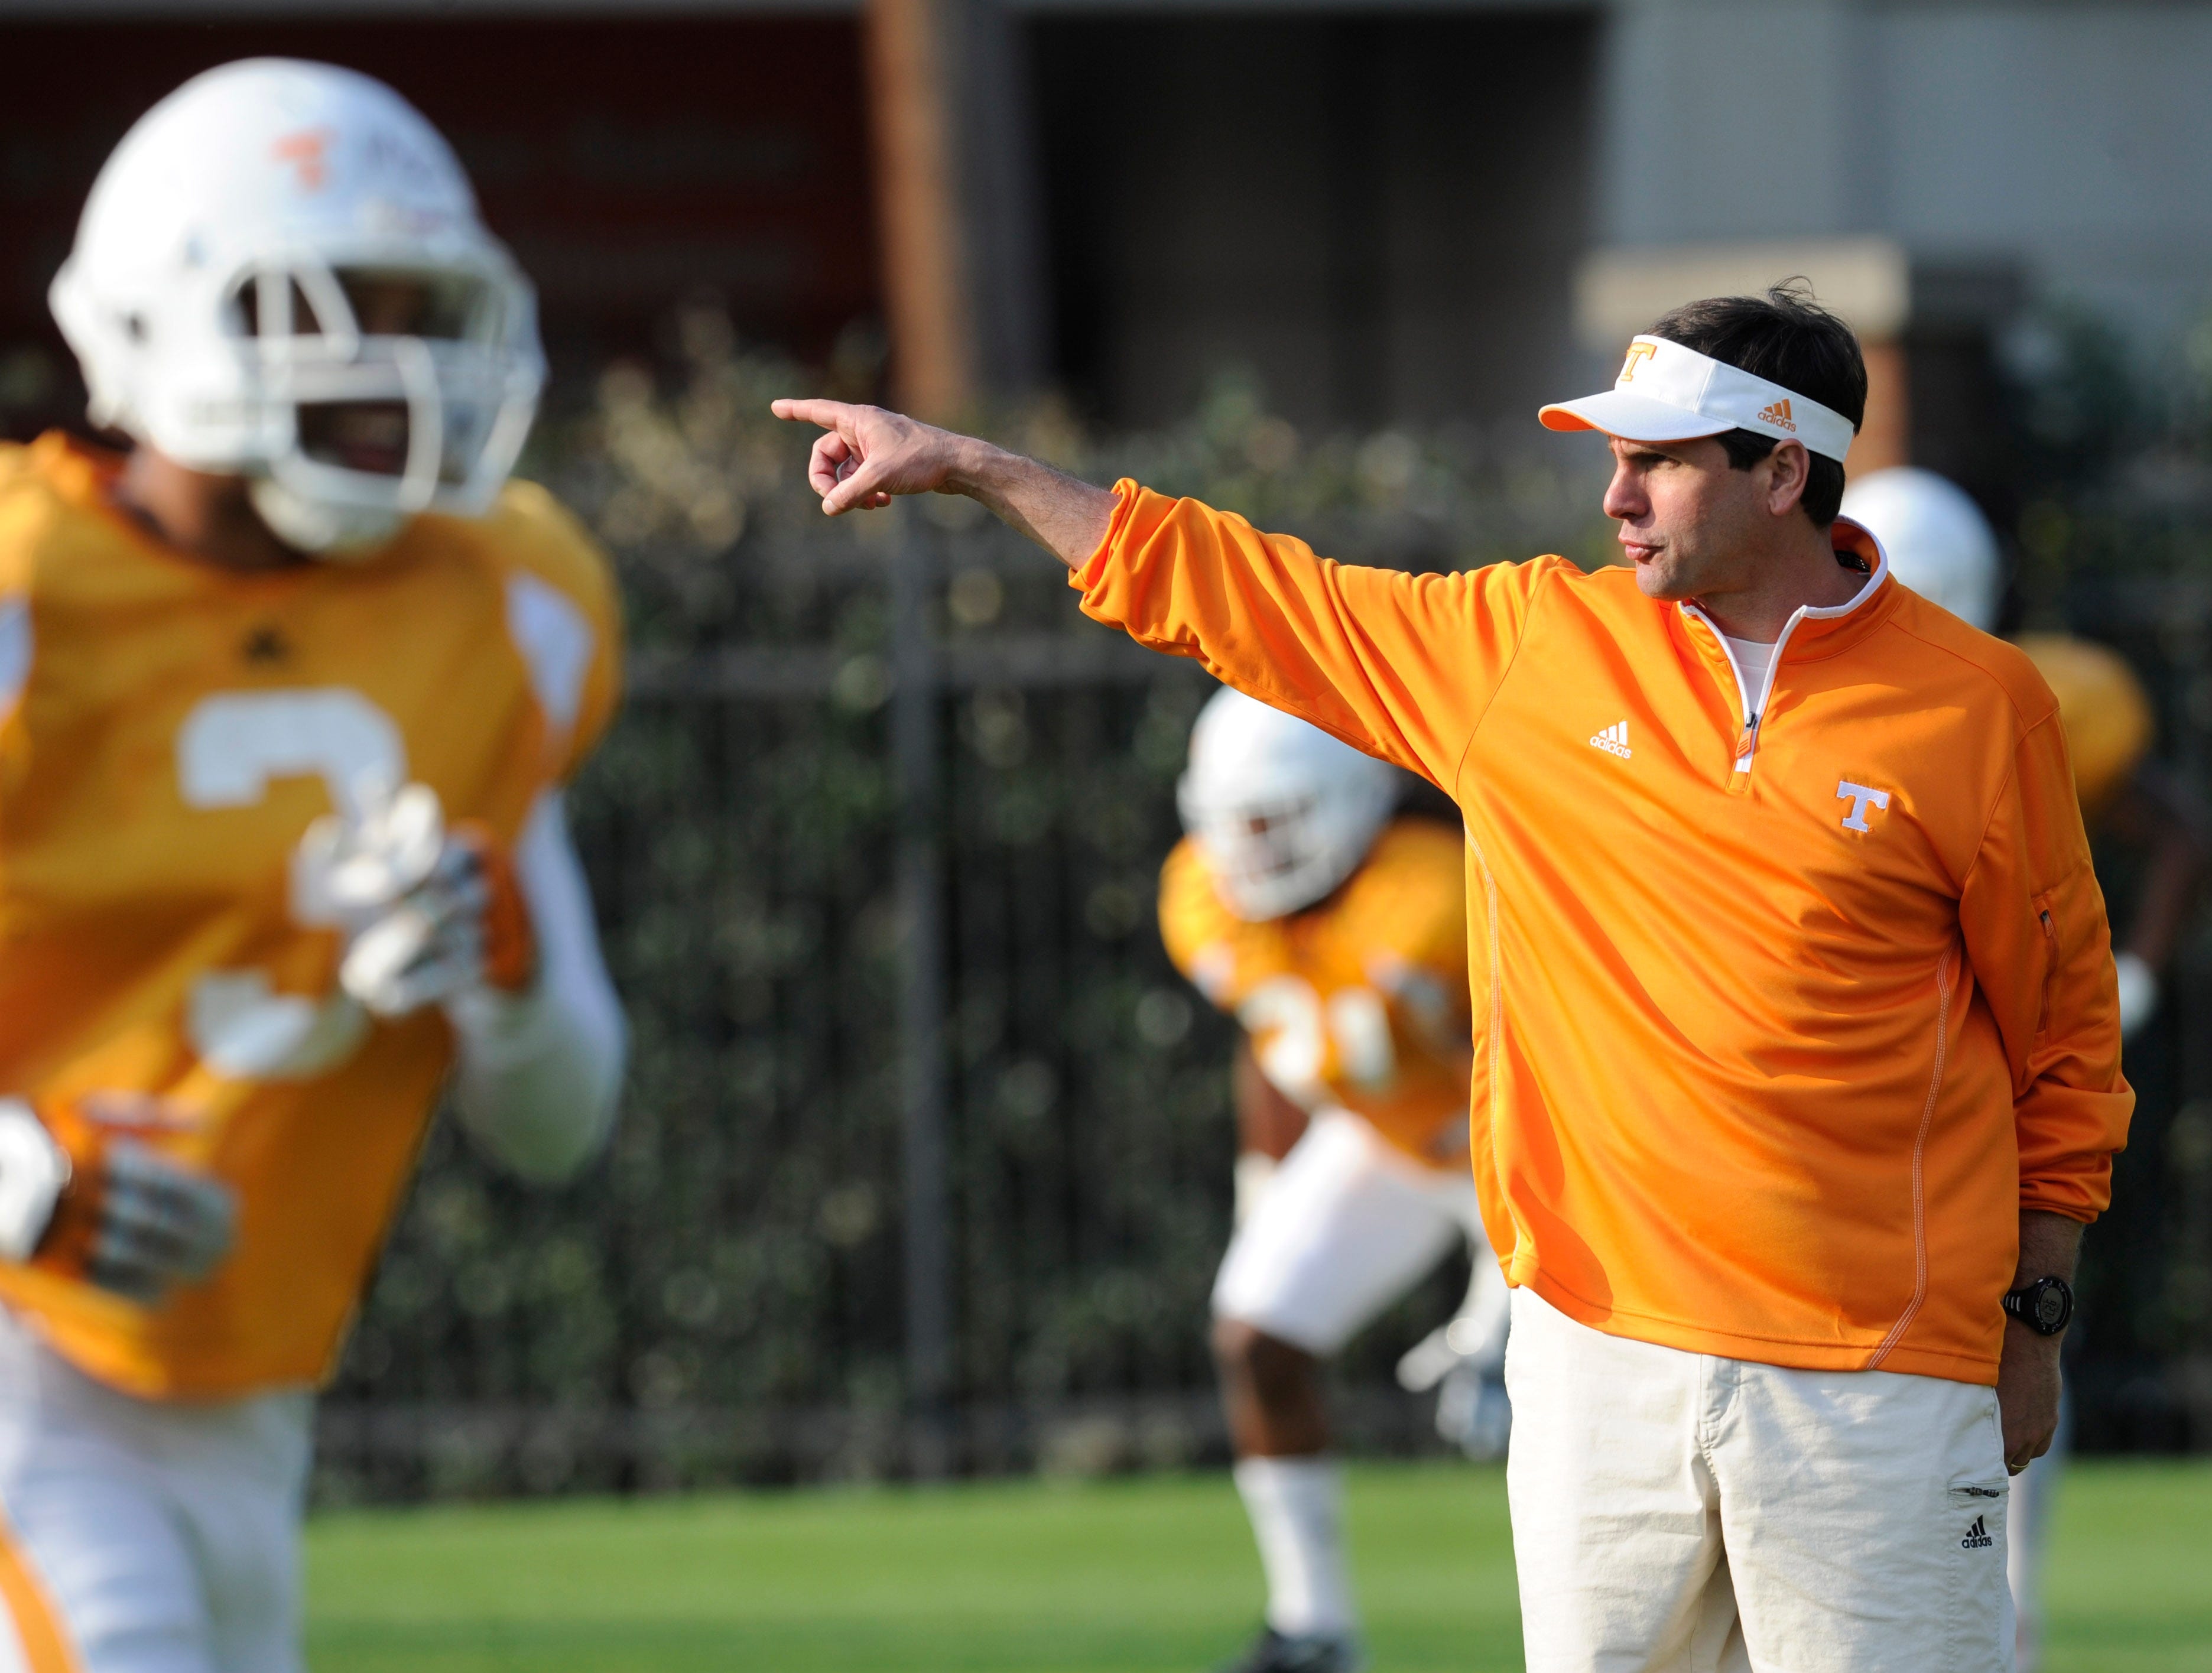 Head coach Derek Dooley directs players during spring practice at Haslam Field on Thursday, March 29, 2012.